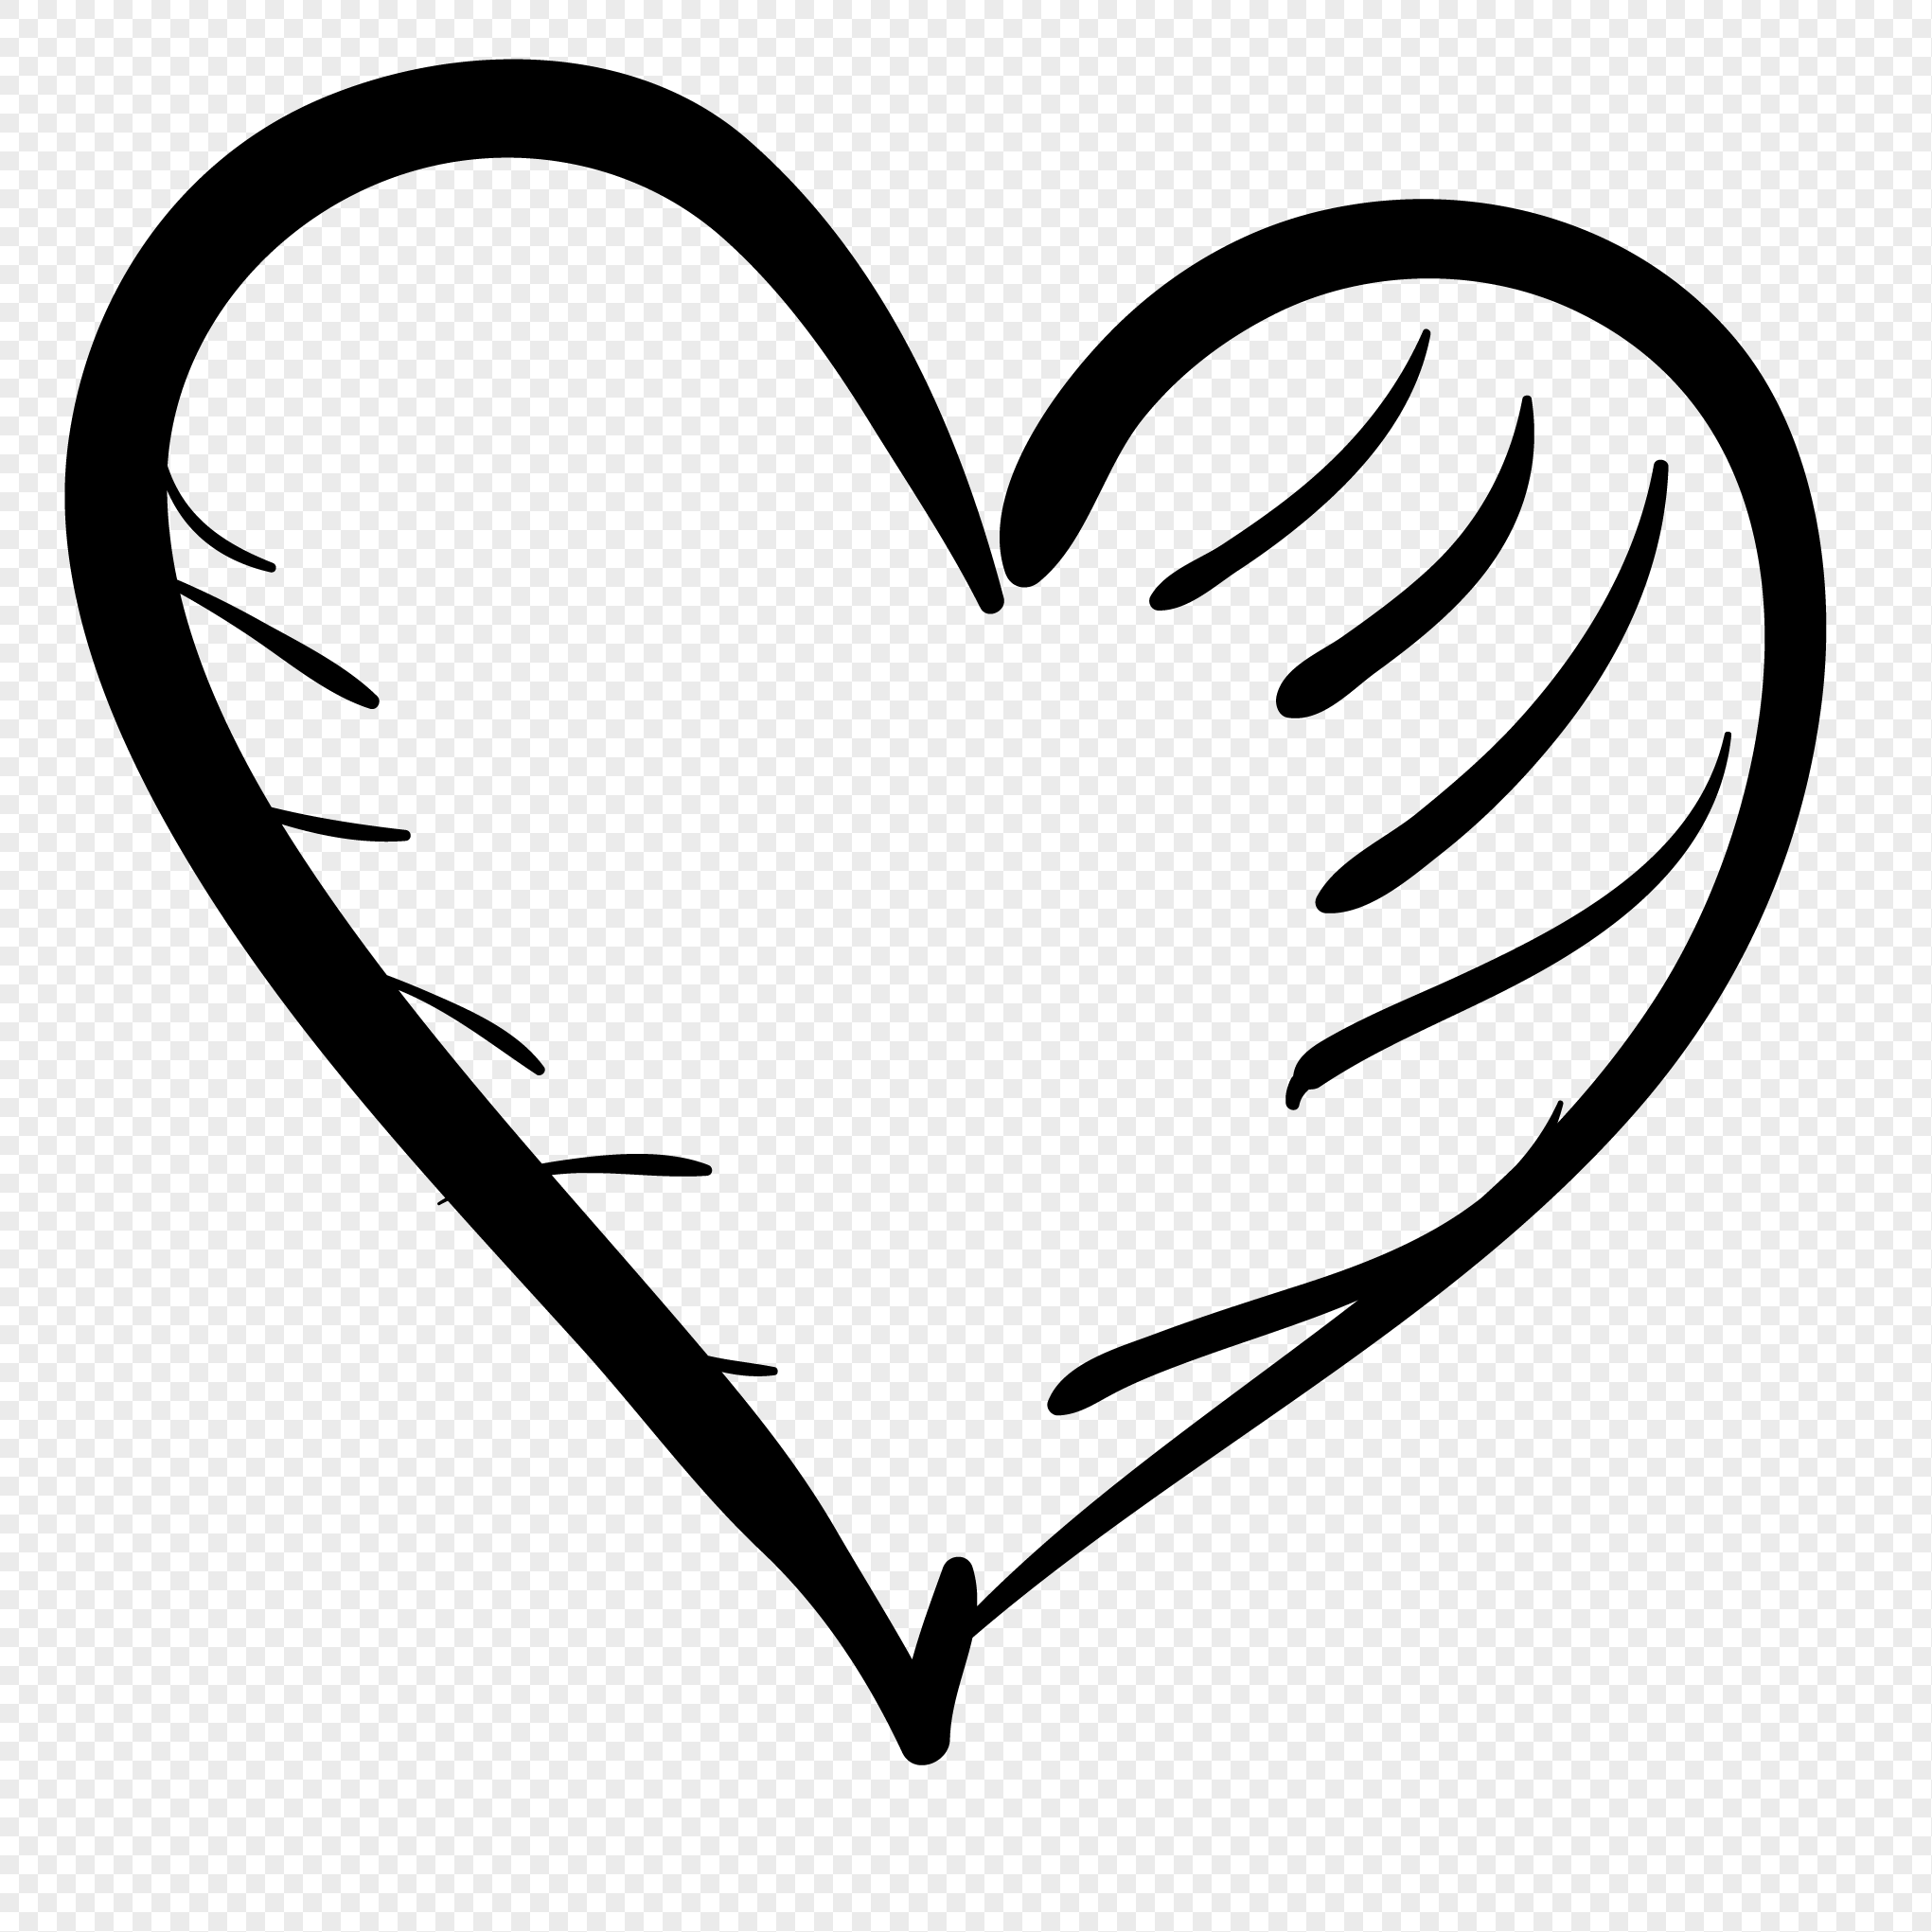 2041x2041 Hand Drawn Heart Vector Image Picture 400315607 Free